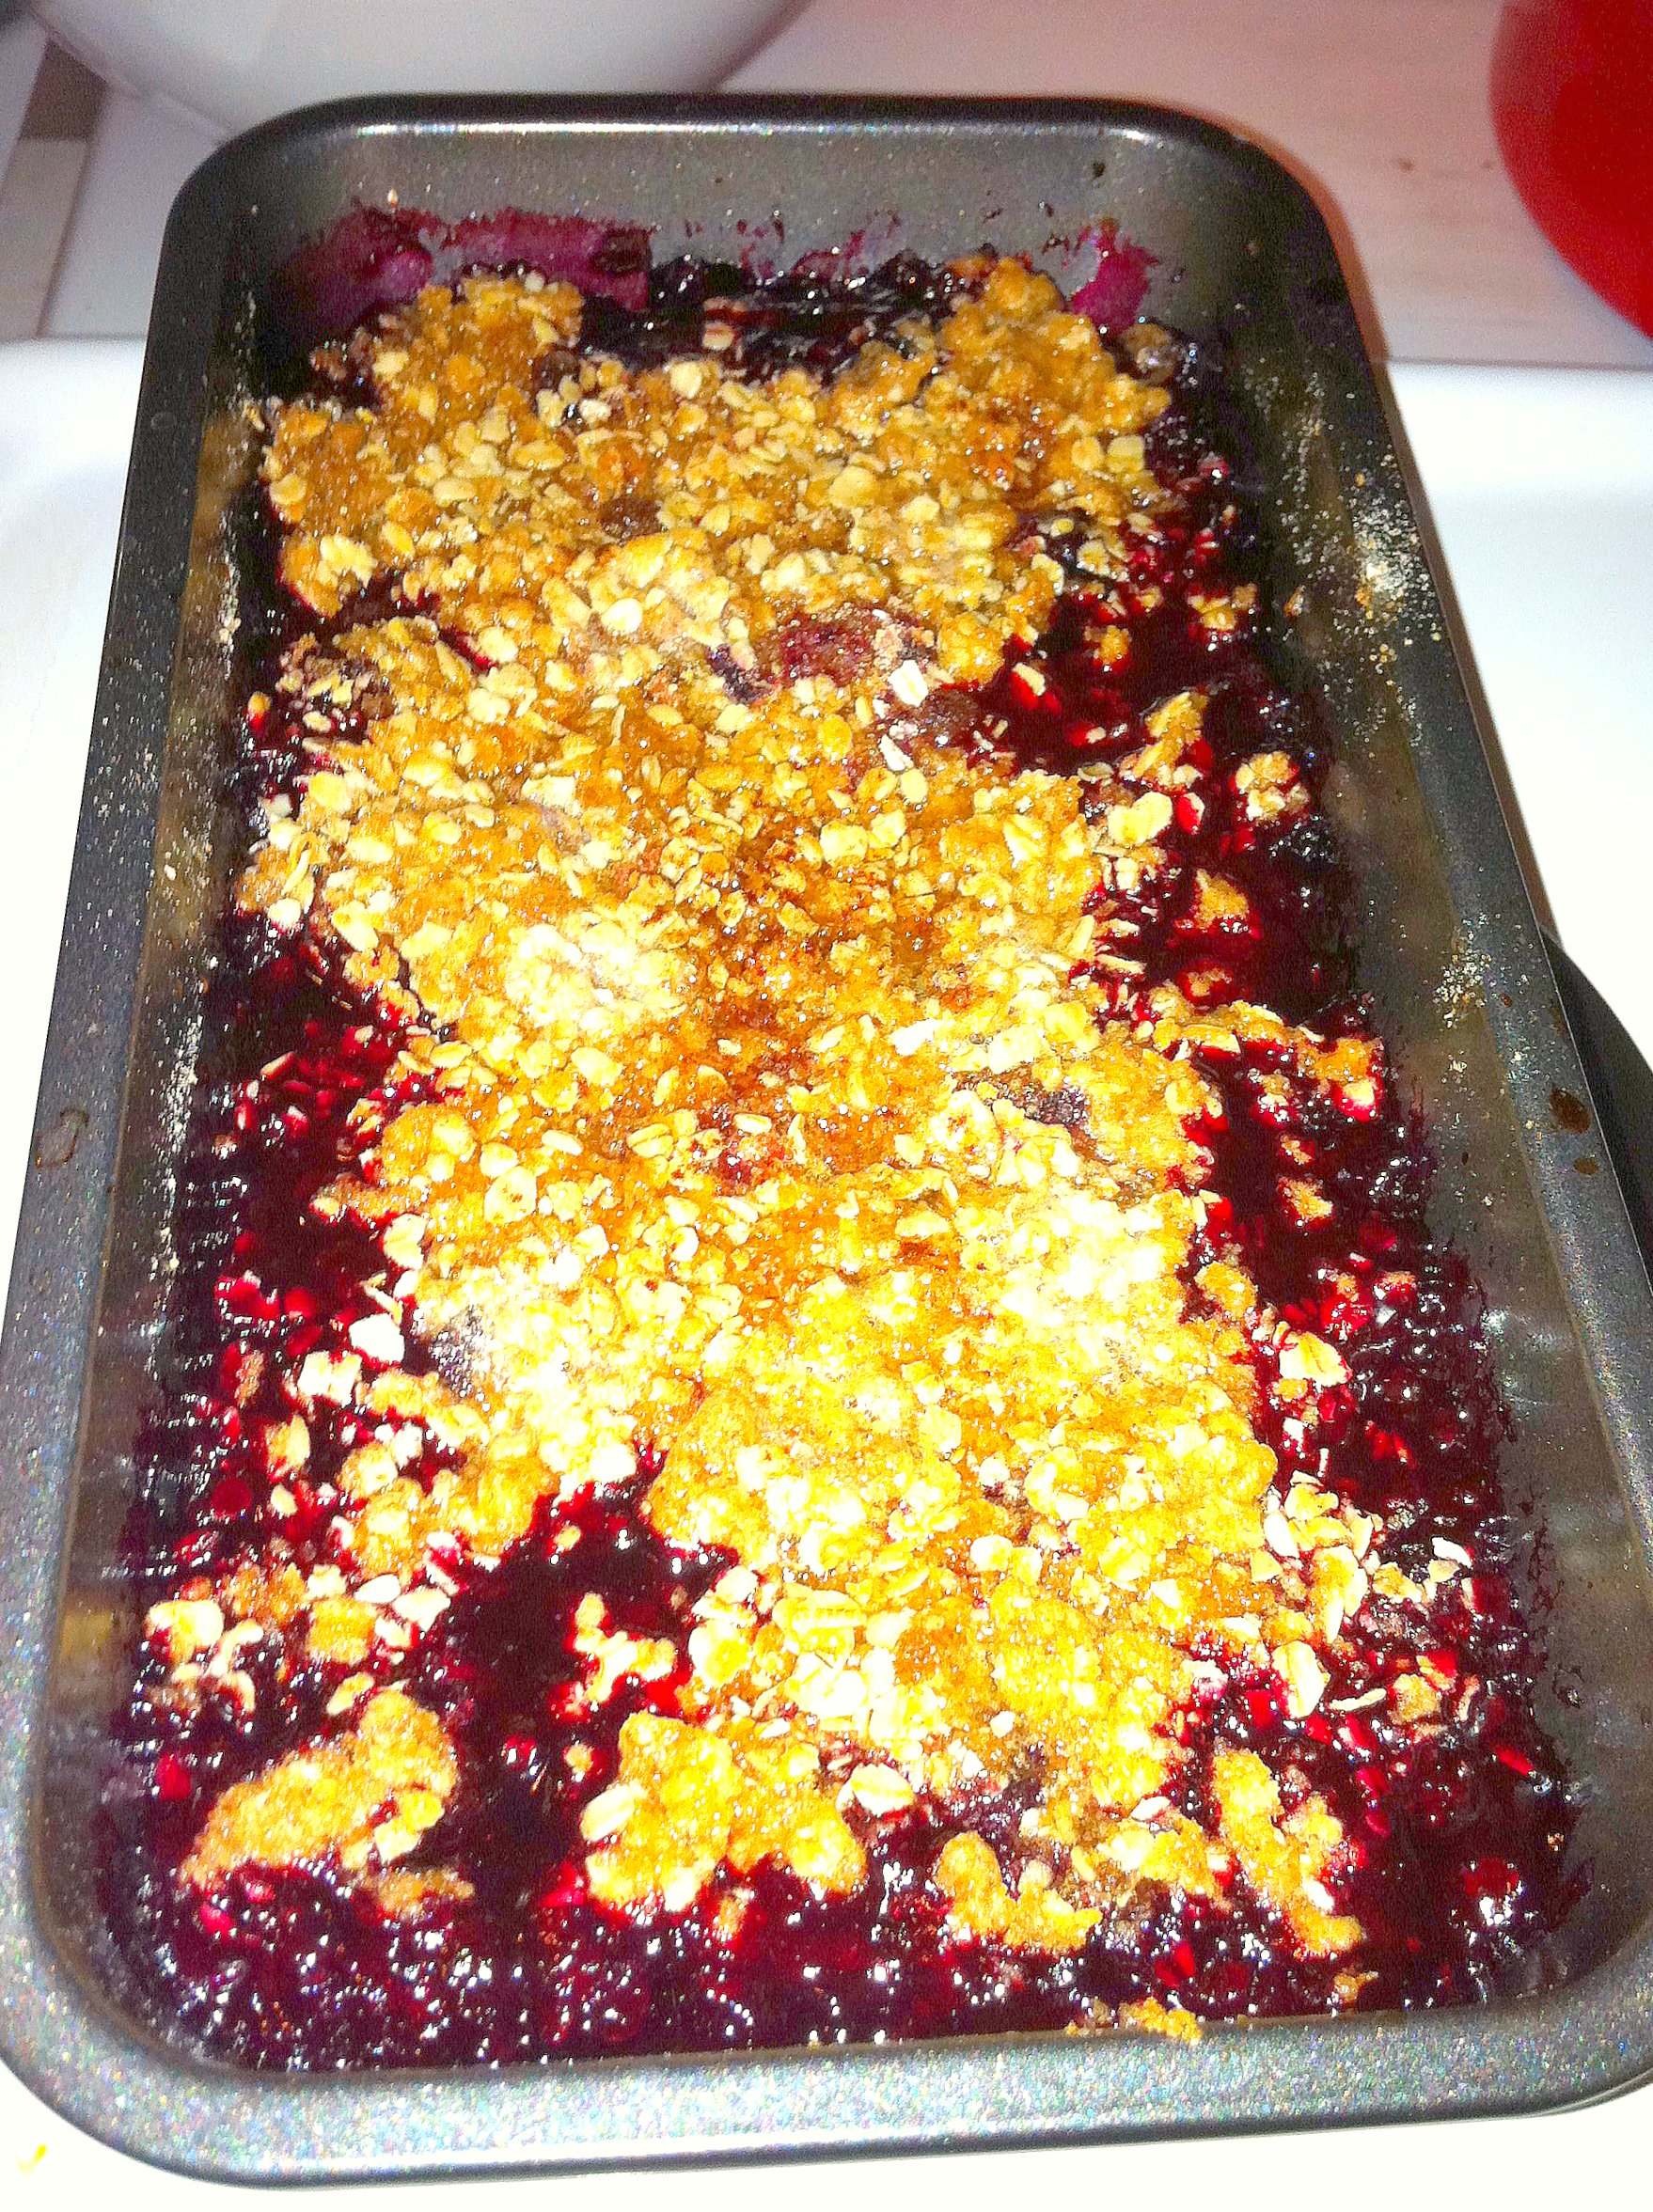 black raspberry, wild blueberry and marion blackberry crisp